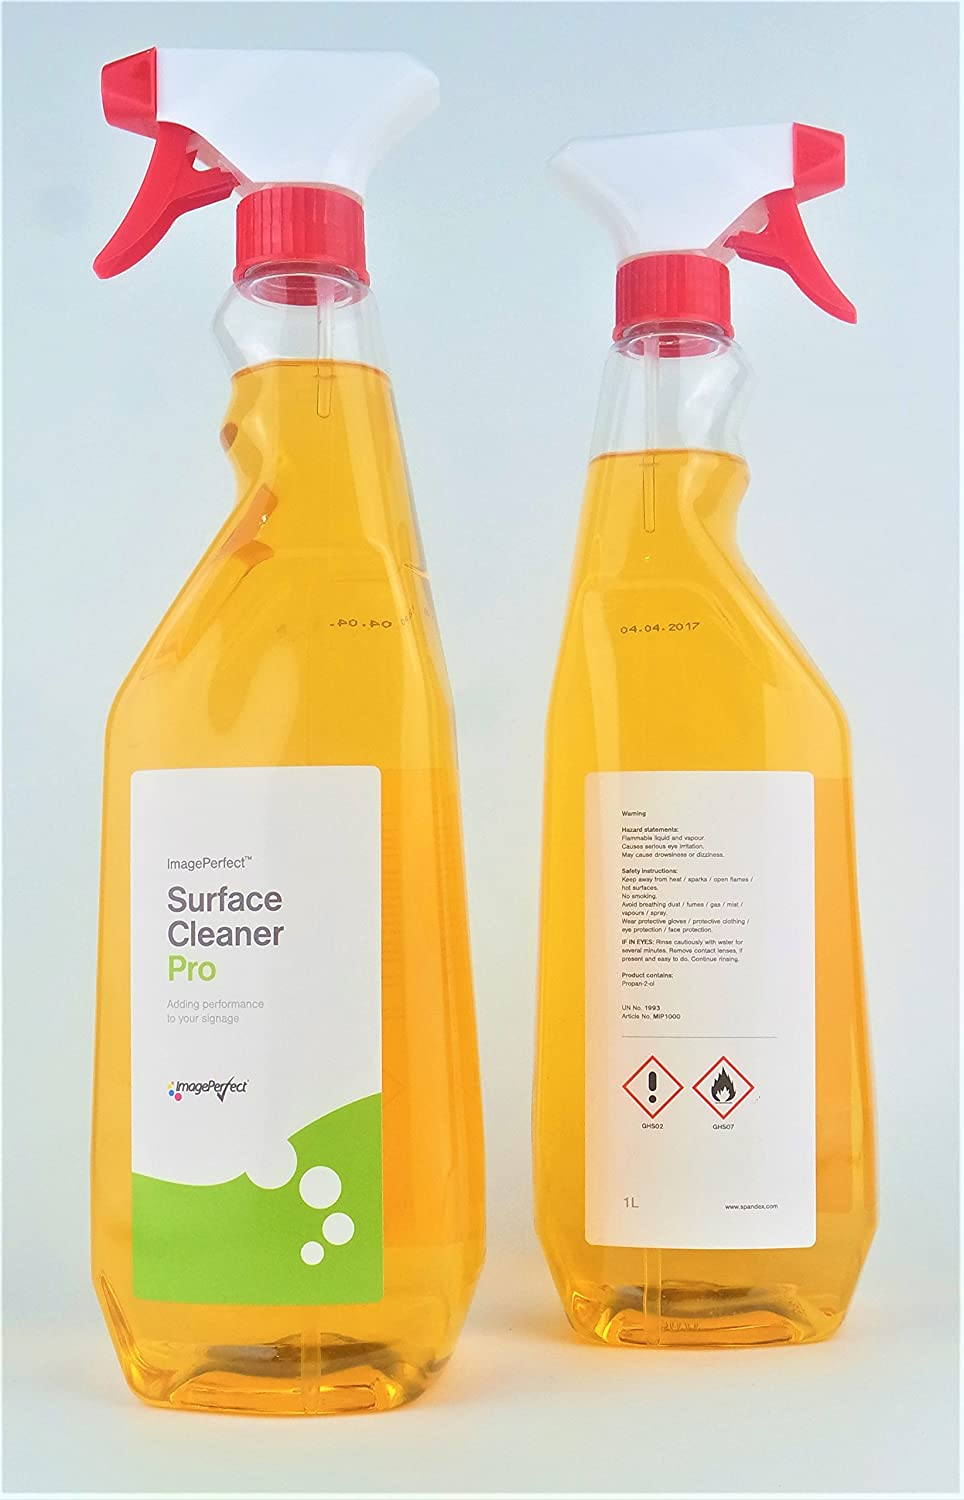 Imageperfect Surface Cleaner Pro 1l Auto